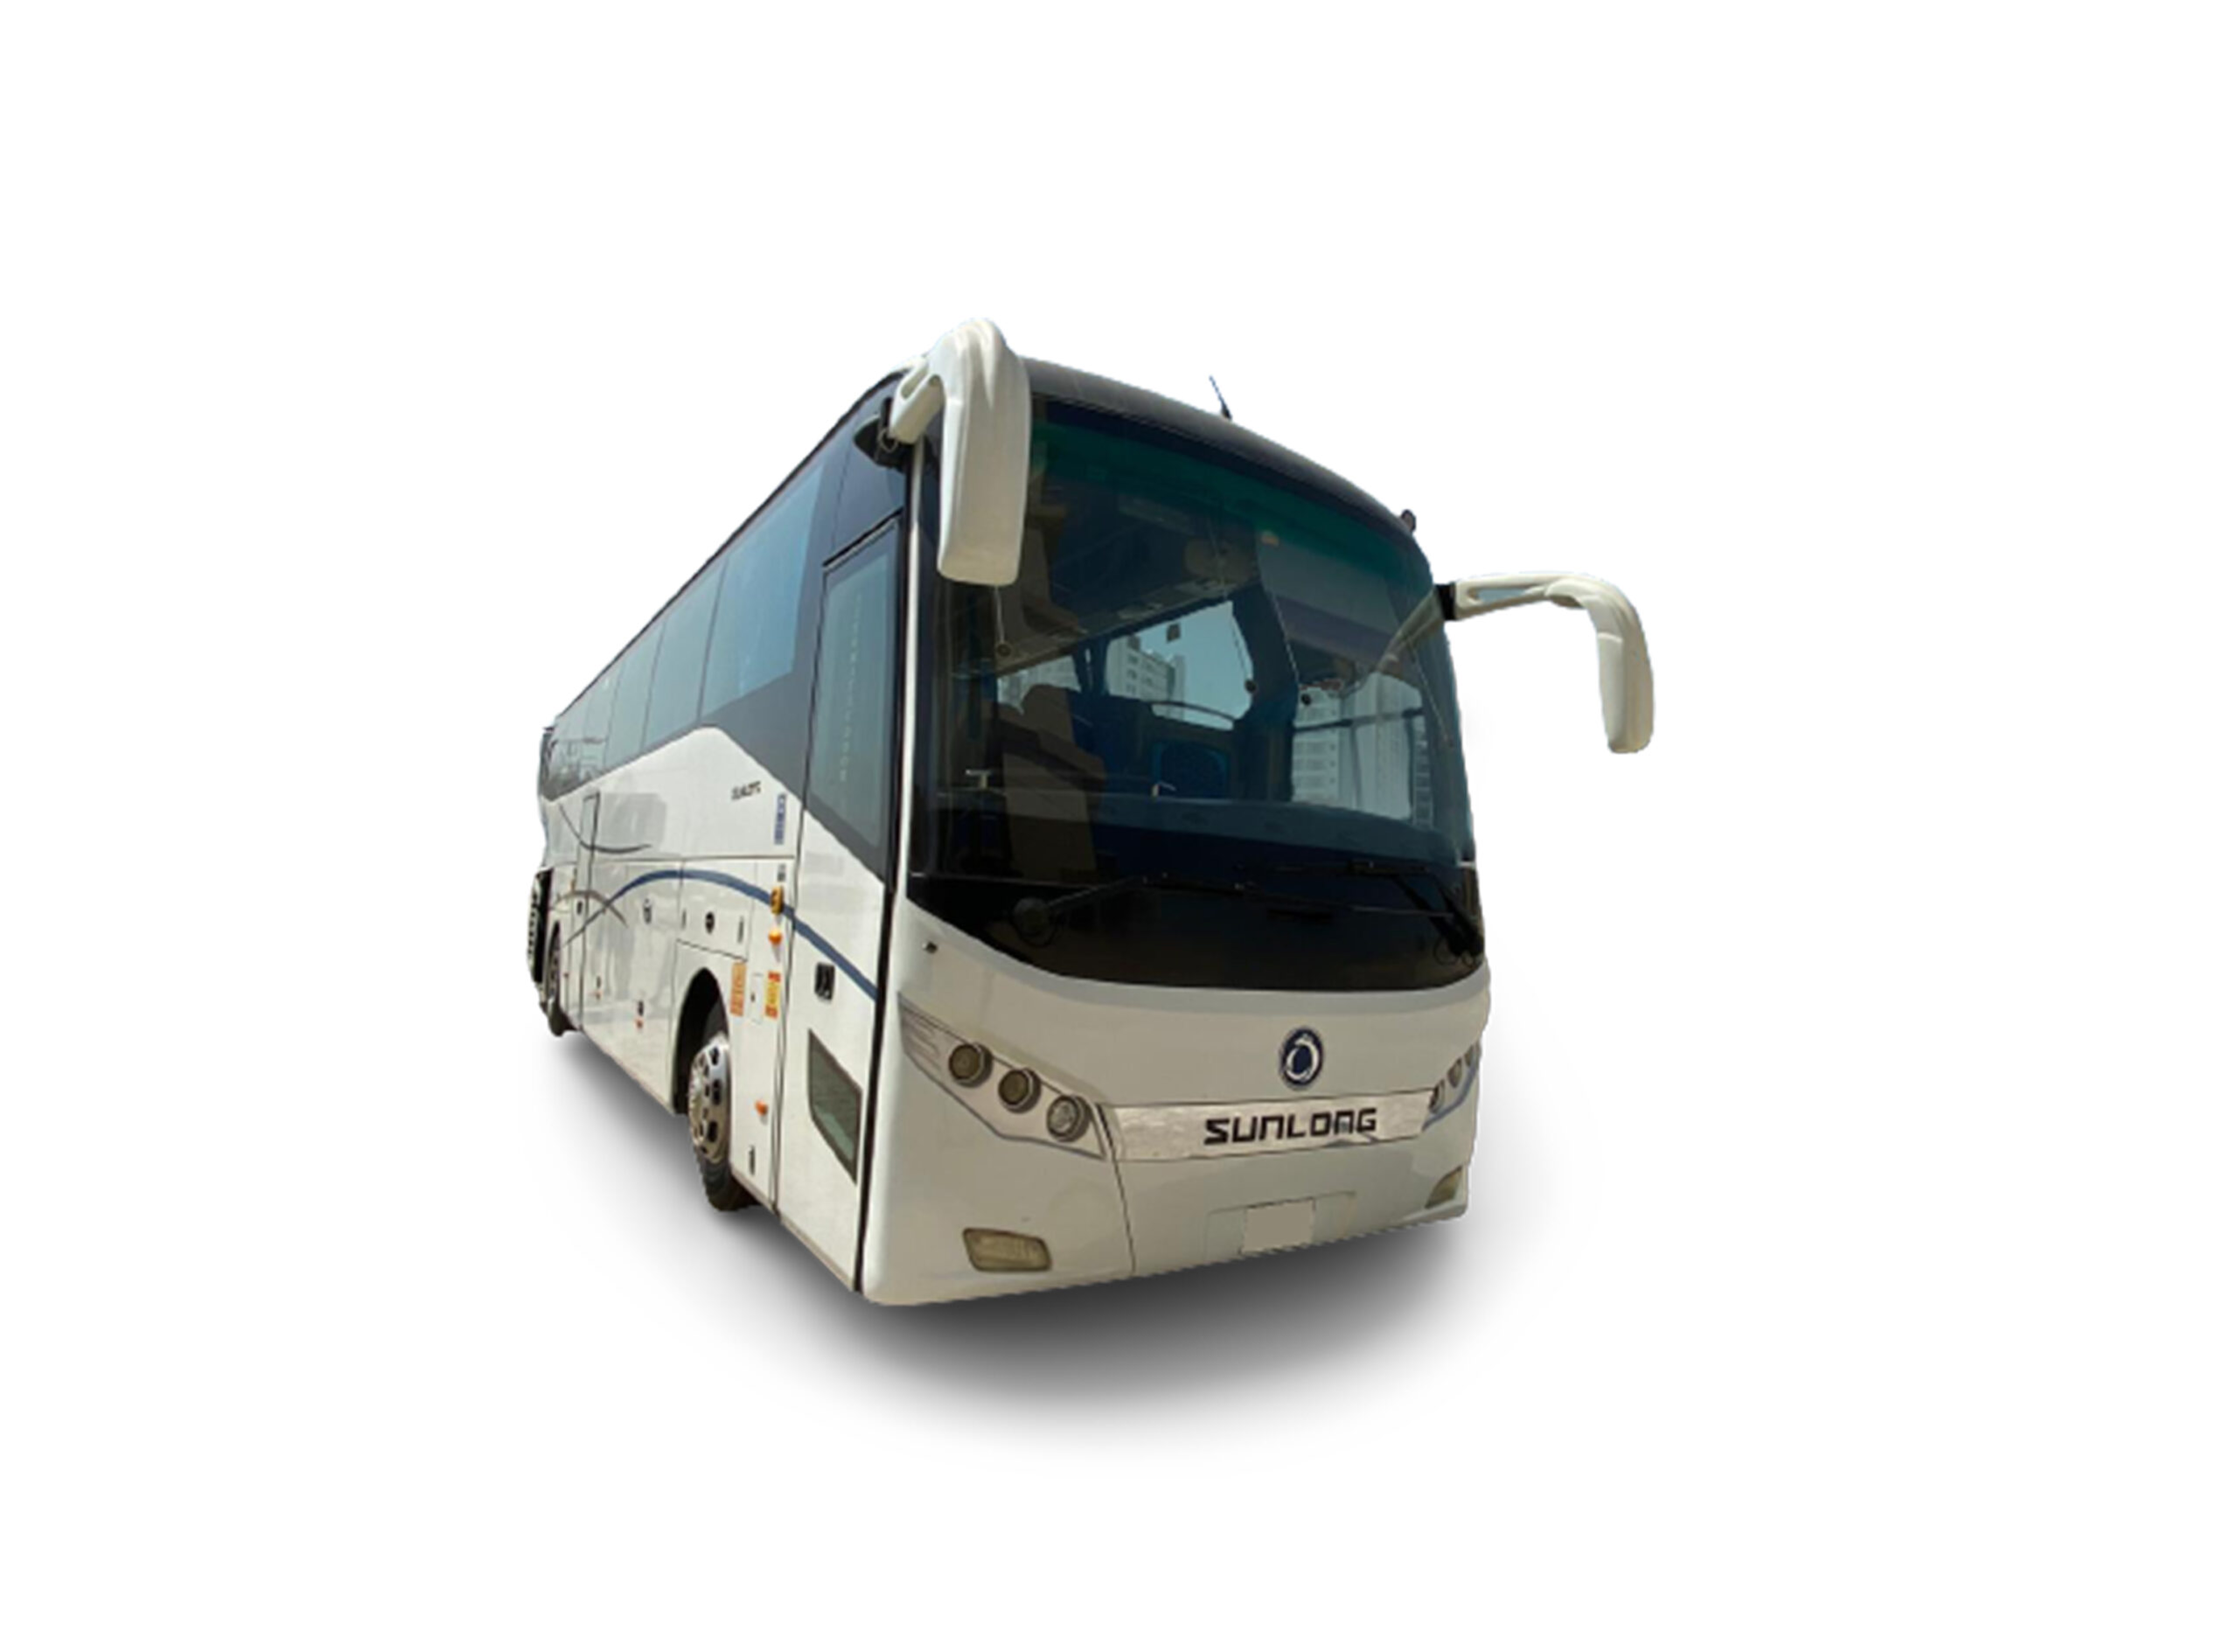 Sunlong Bus For Sale - Image 2